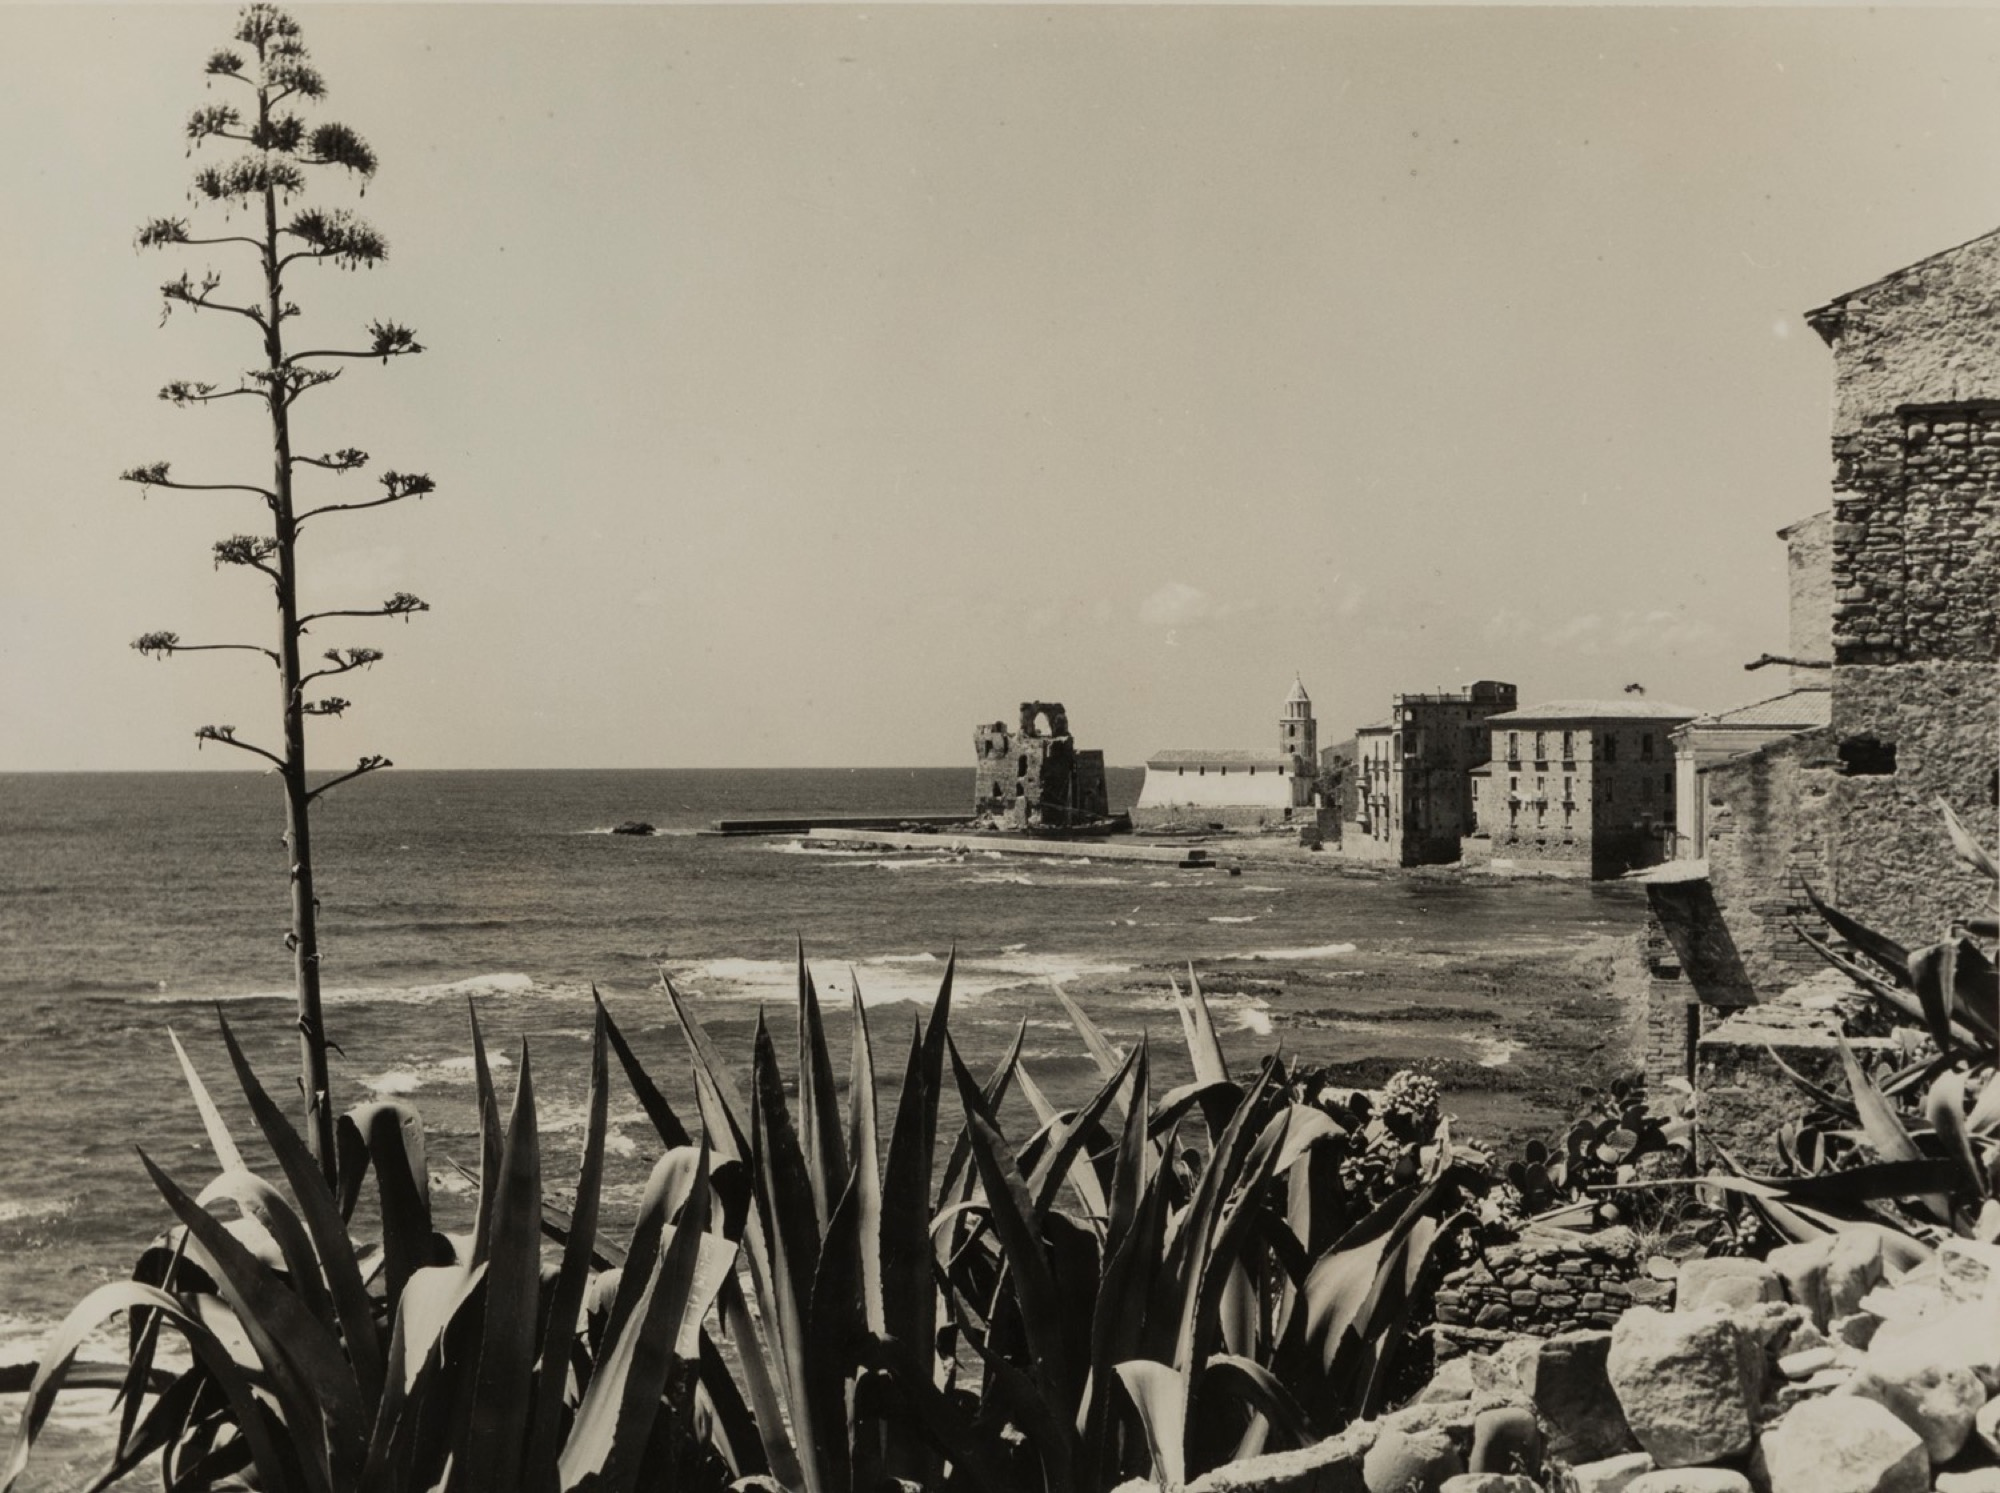 Giulio Parisio - Landscapes, years 1930/1940 - Eight vintage gelatin silver prints [...] - Image 9 of 9